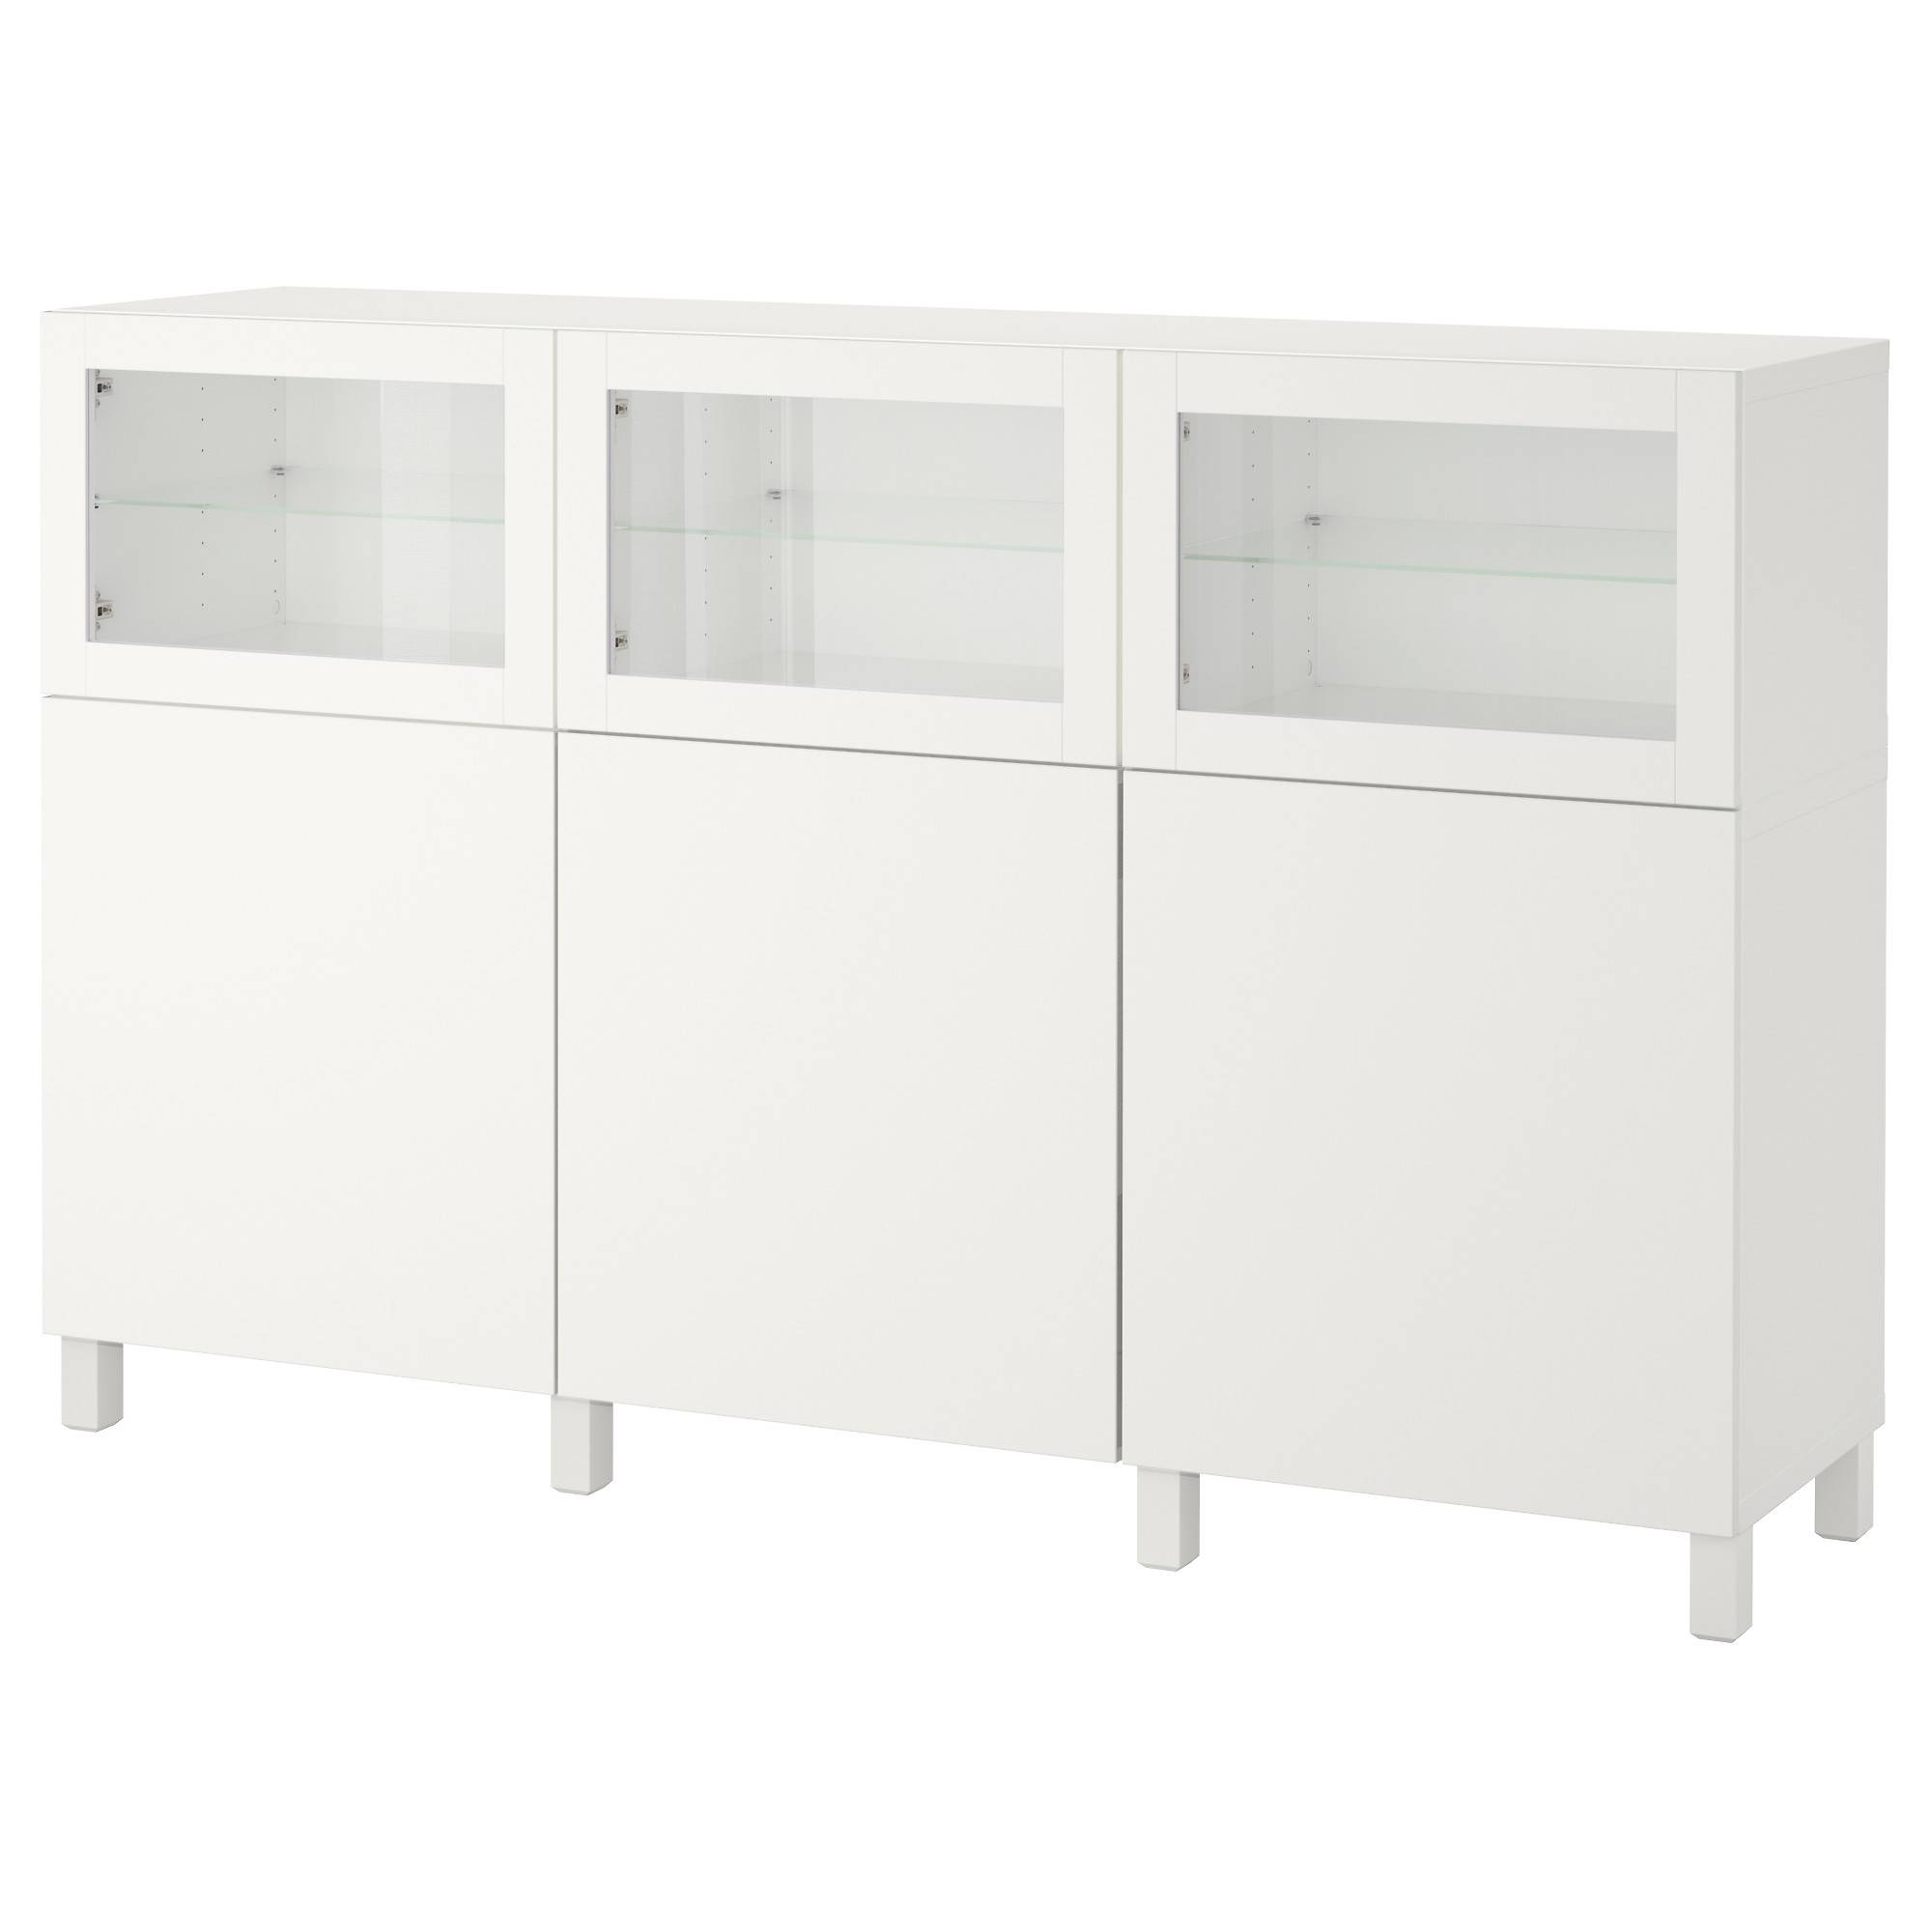 Bestå System - Combinations & Tv Benches - Ikea with regard to White Glass Sideboards (Image 5 of 30)